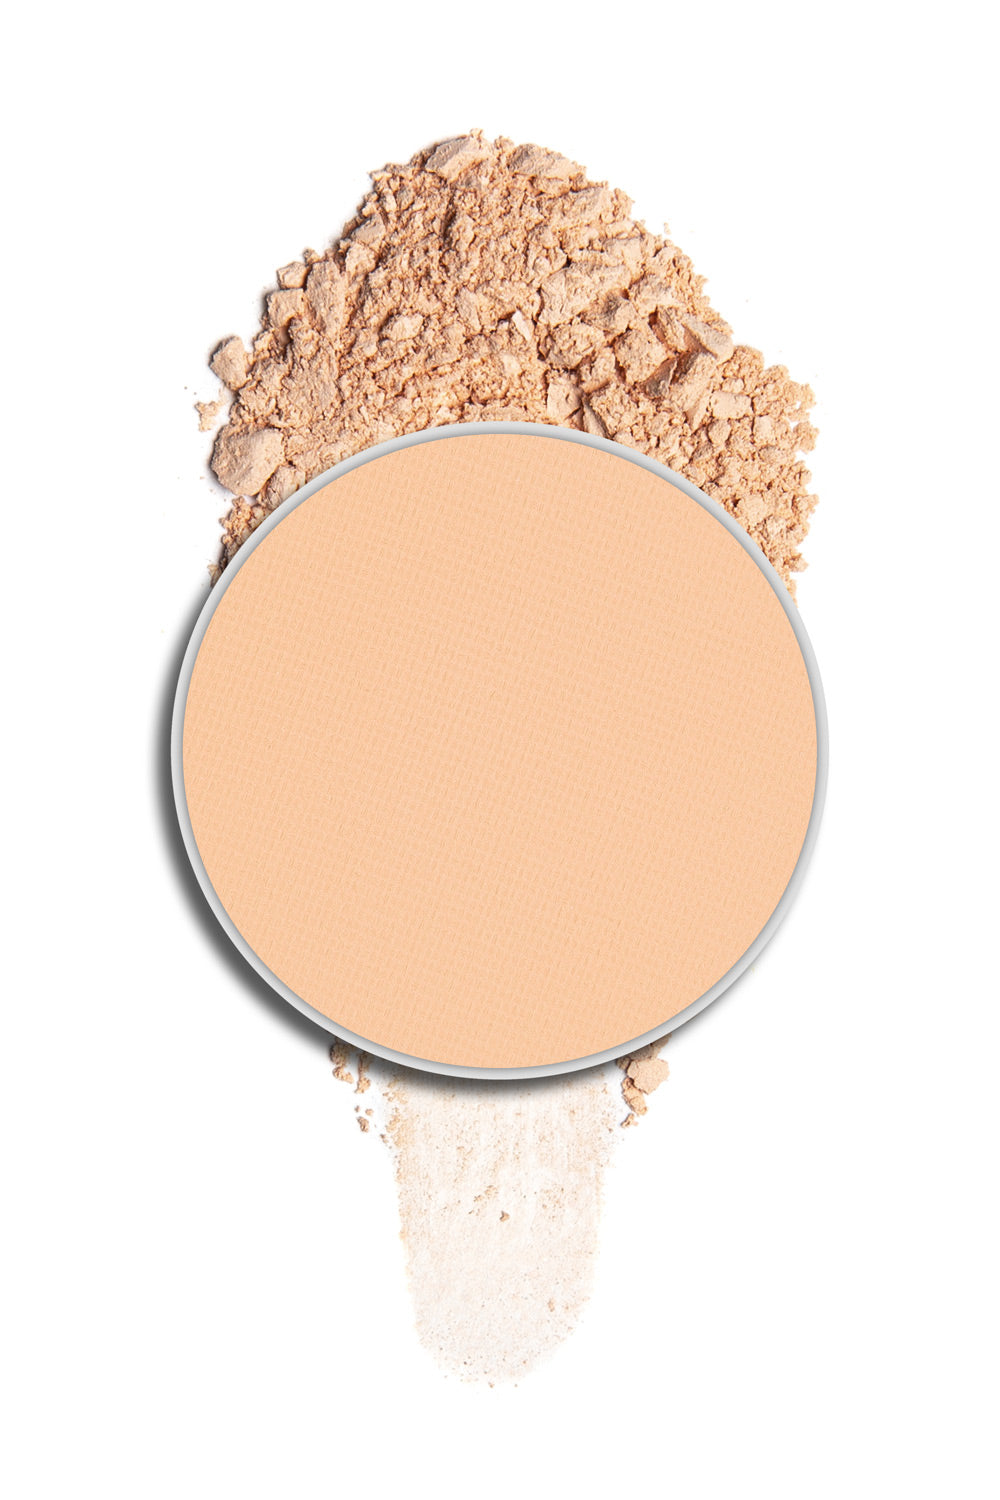 Cantaloupe - Eyeshadow Pan